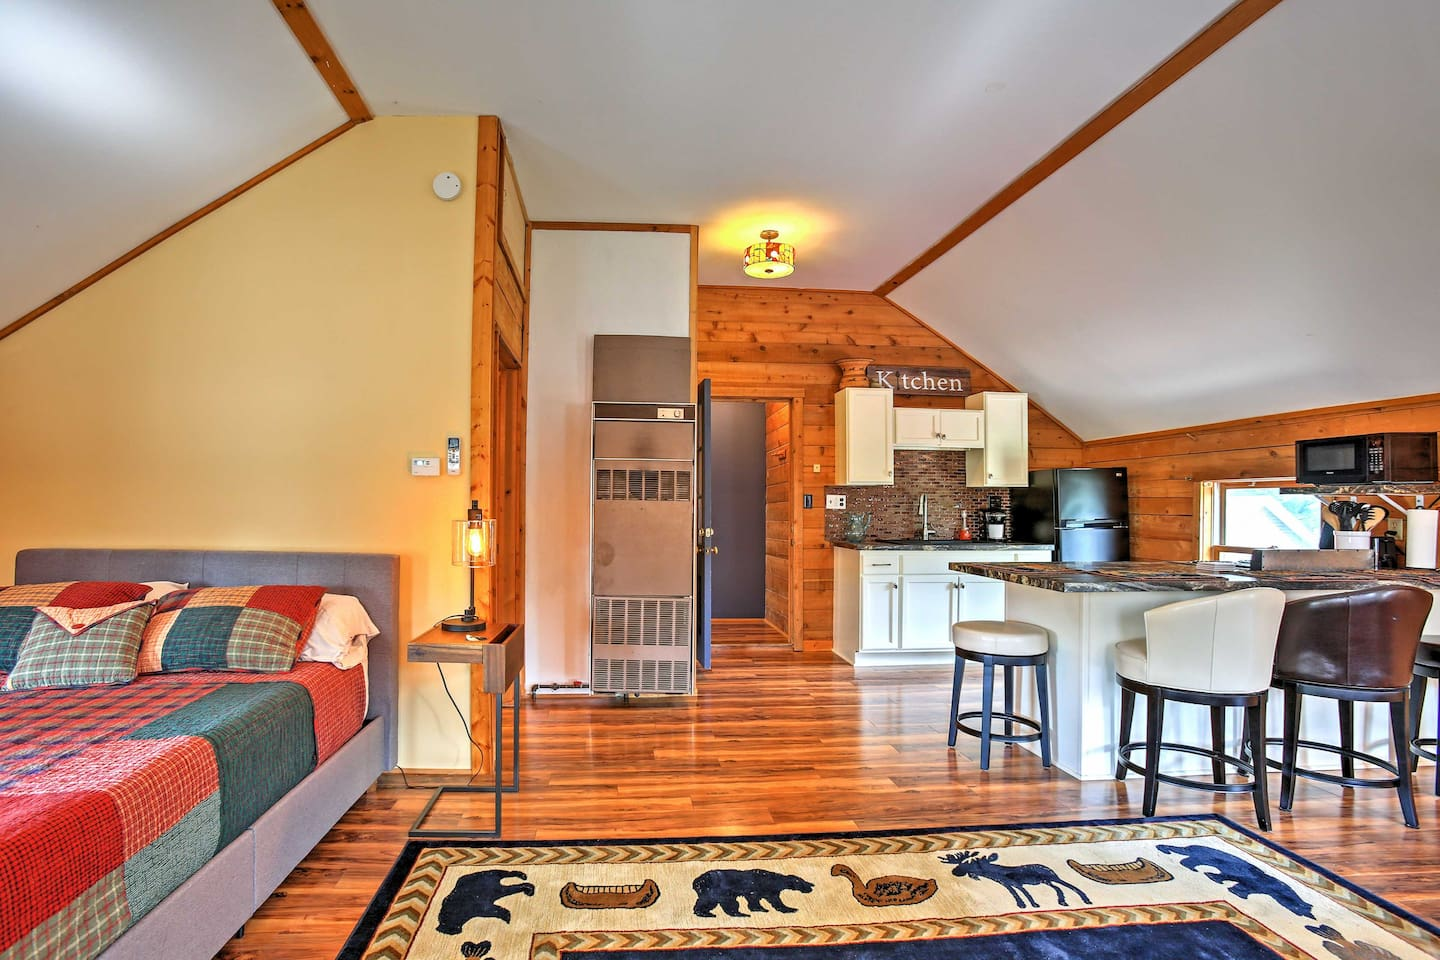 This studio offers comfortable accommodations for 2 guests to enjoy.